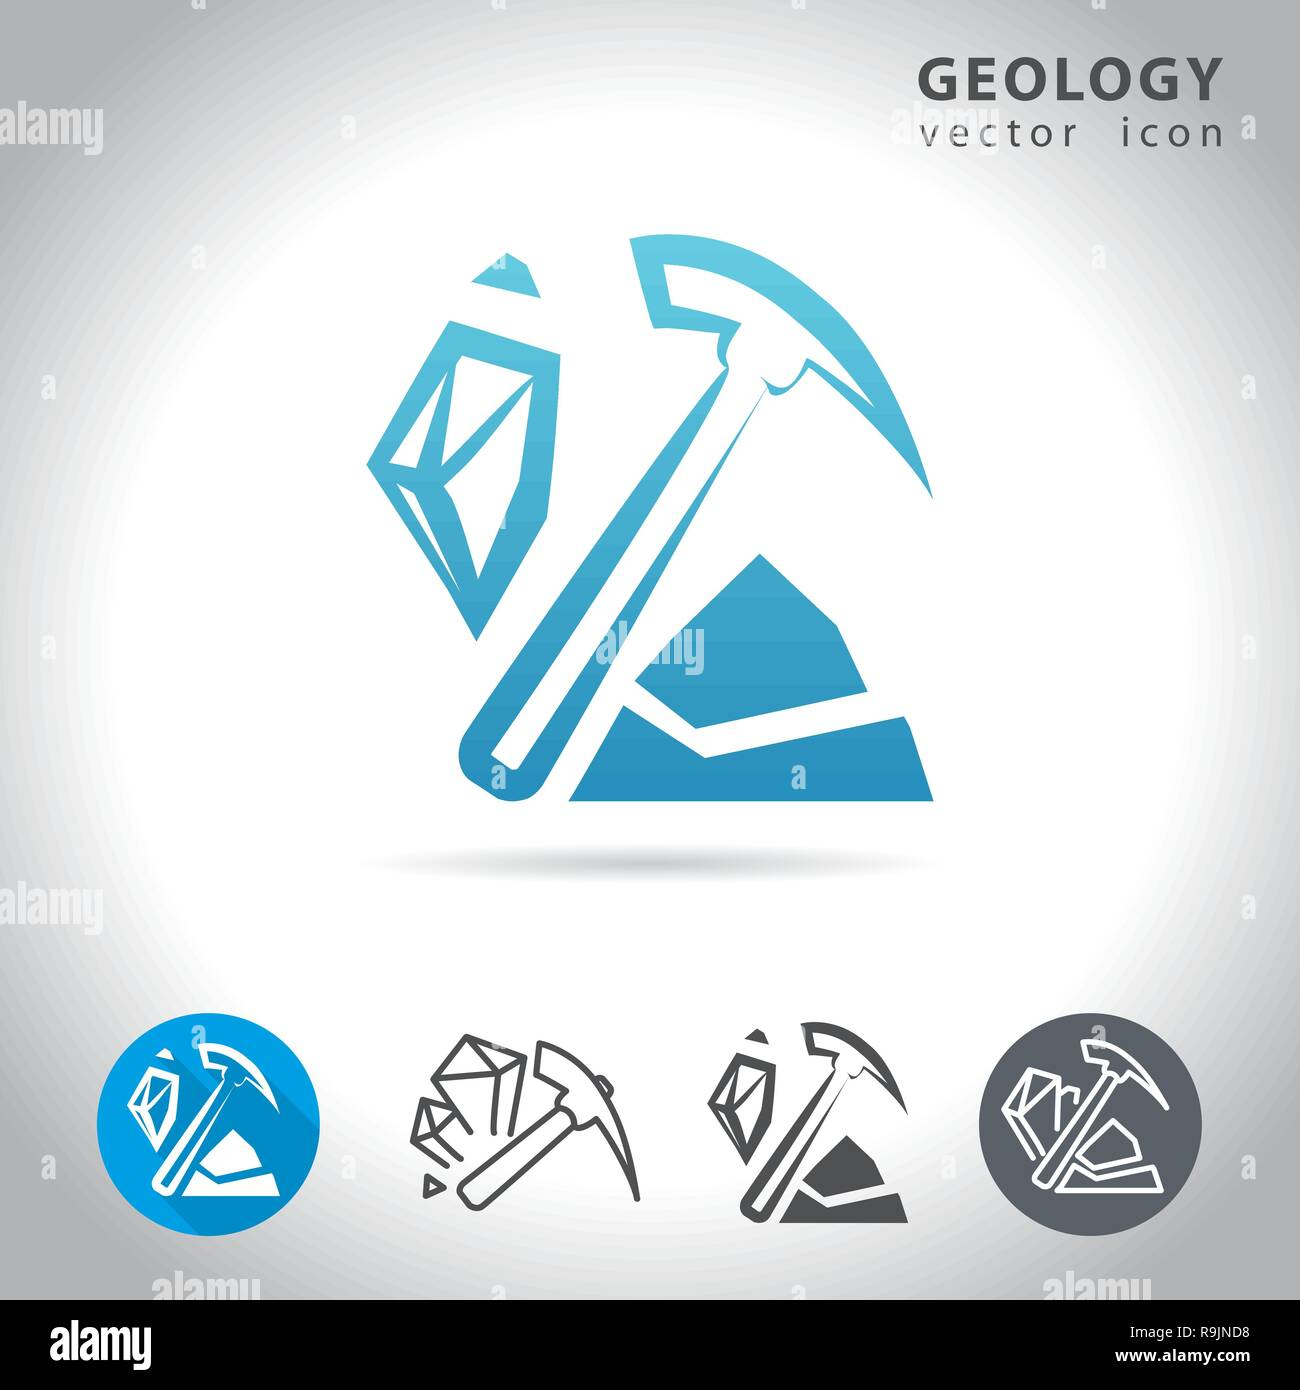 geology blue icon - Stock Vector